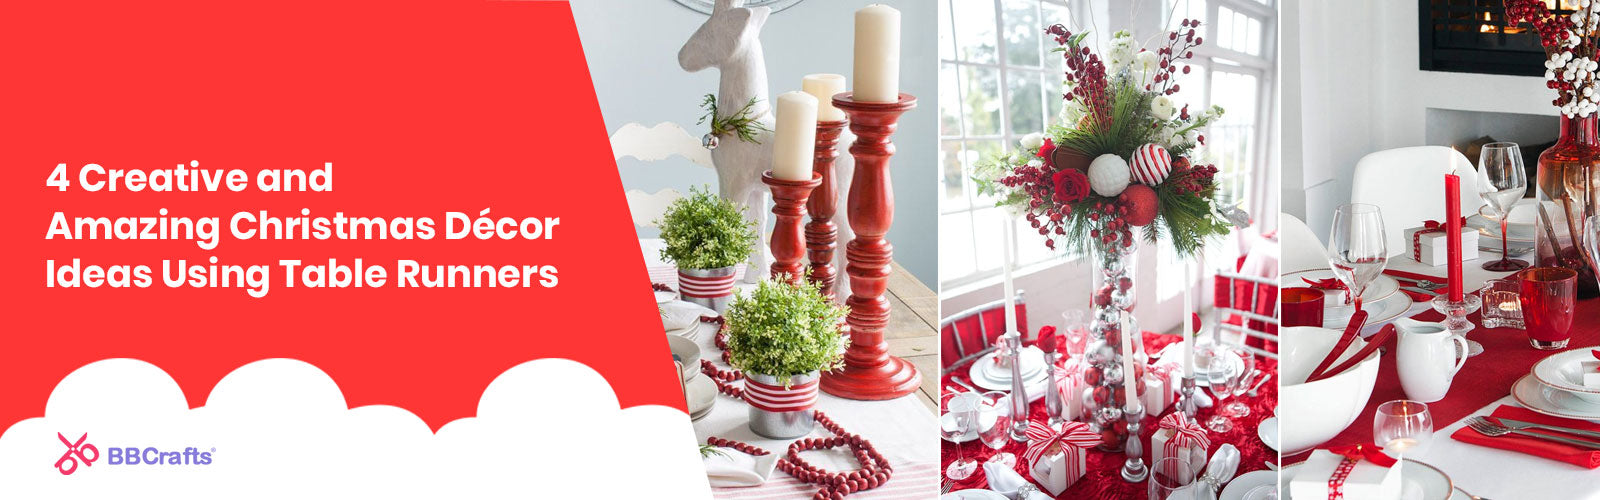 4 Creative and Amazing Christmas Décor Ideas Using Table Runners